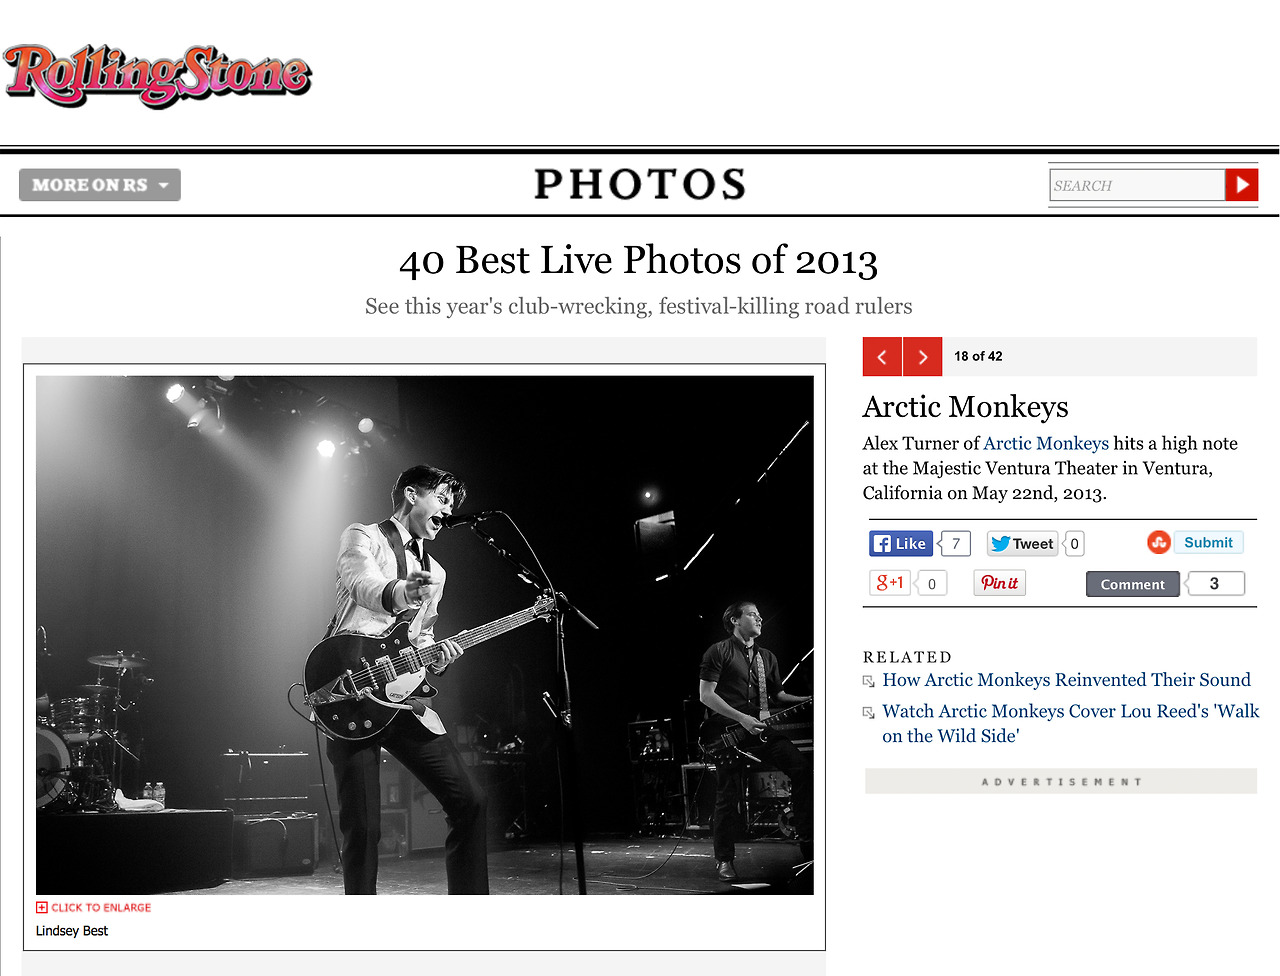 Rolling Stone included one of my photos of  Arctic Monkeys  in their end of the year  Best Live Photos of 2013 gallery . I have a few others in their  full 2013 gallery  as well.  http://www.rollingstone.com/music/pictures/40-best-live-photos-of-2013-20131217/arctic-monkeys-0254842   All content and photographs © Lindsey Best. Reproduction without written permission is forbidden.